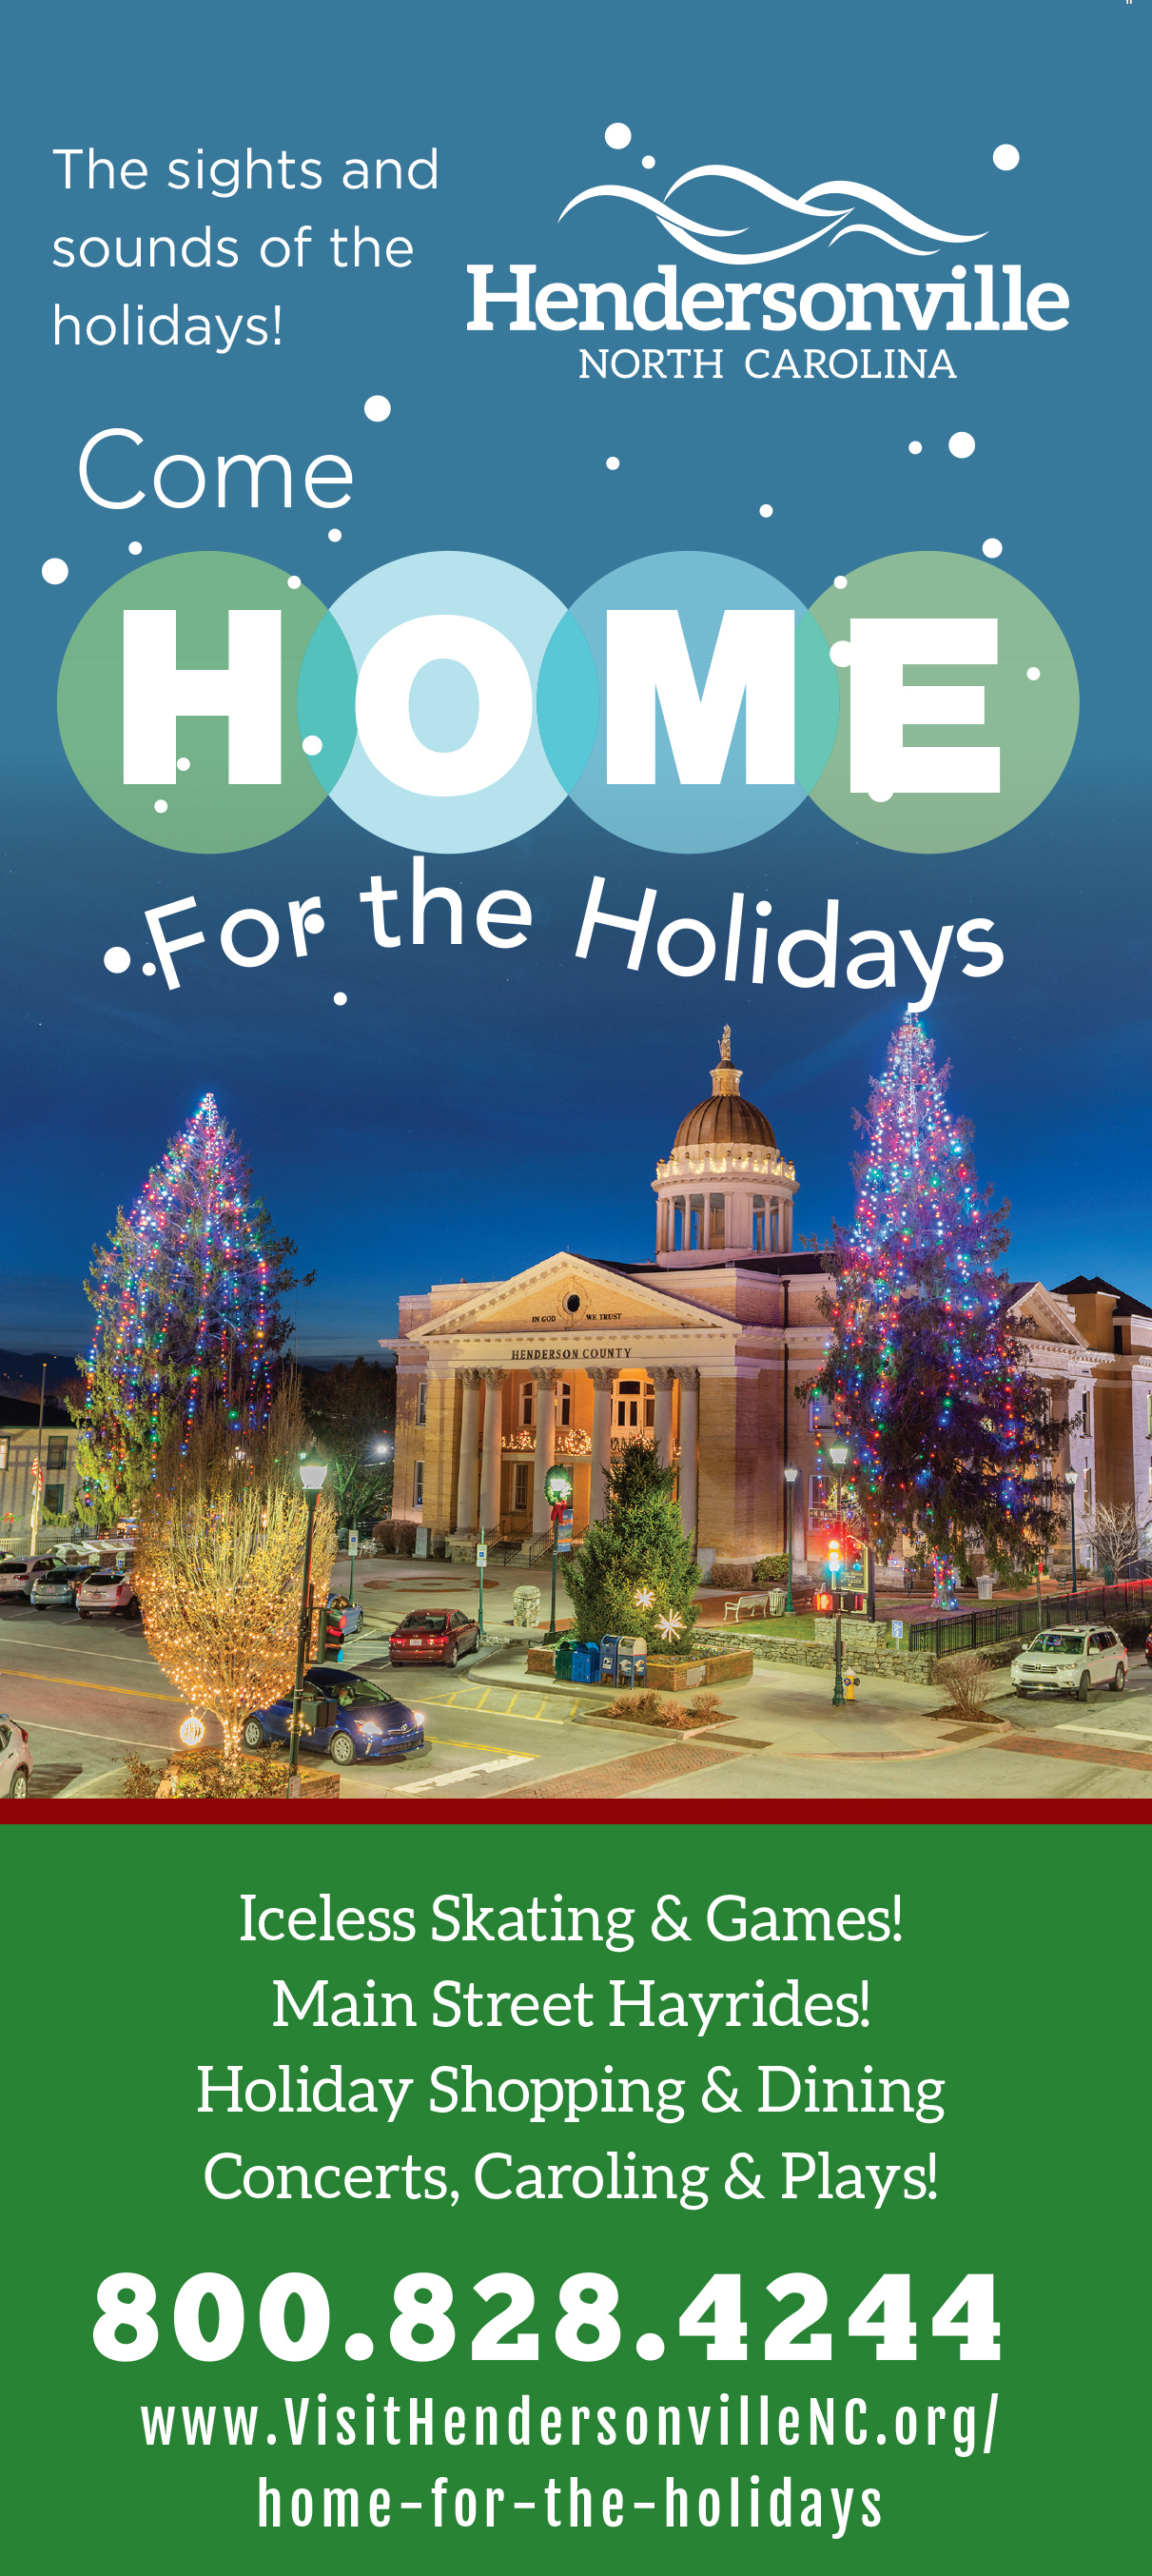 Hendersonville Nc Christmas Events 2020 Home for the Holidays   Visitors Information Center